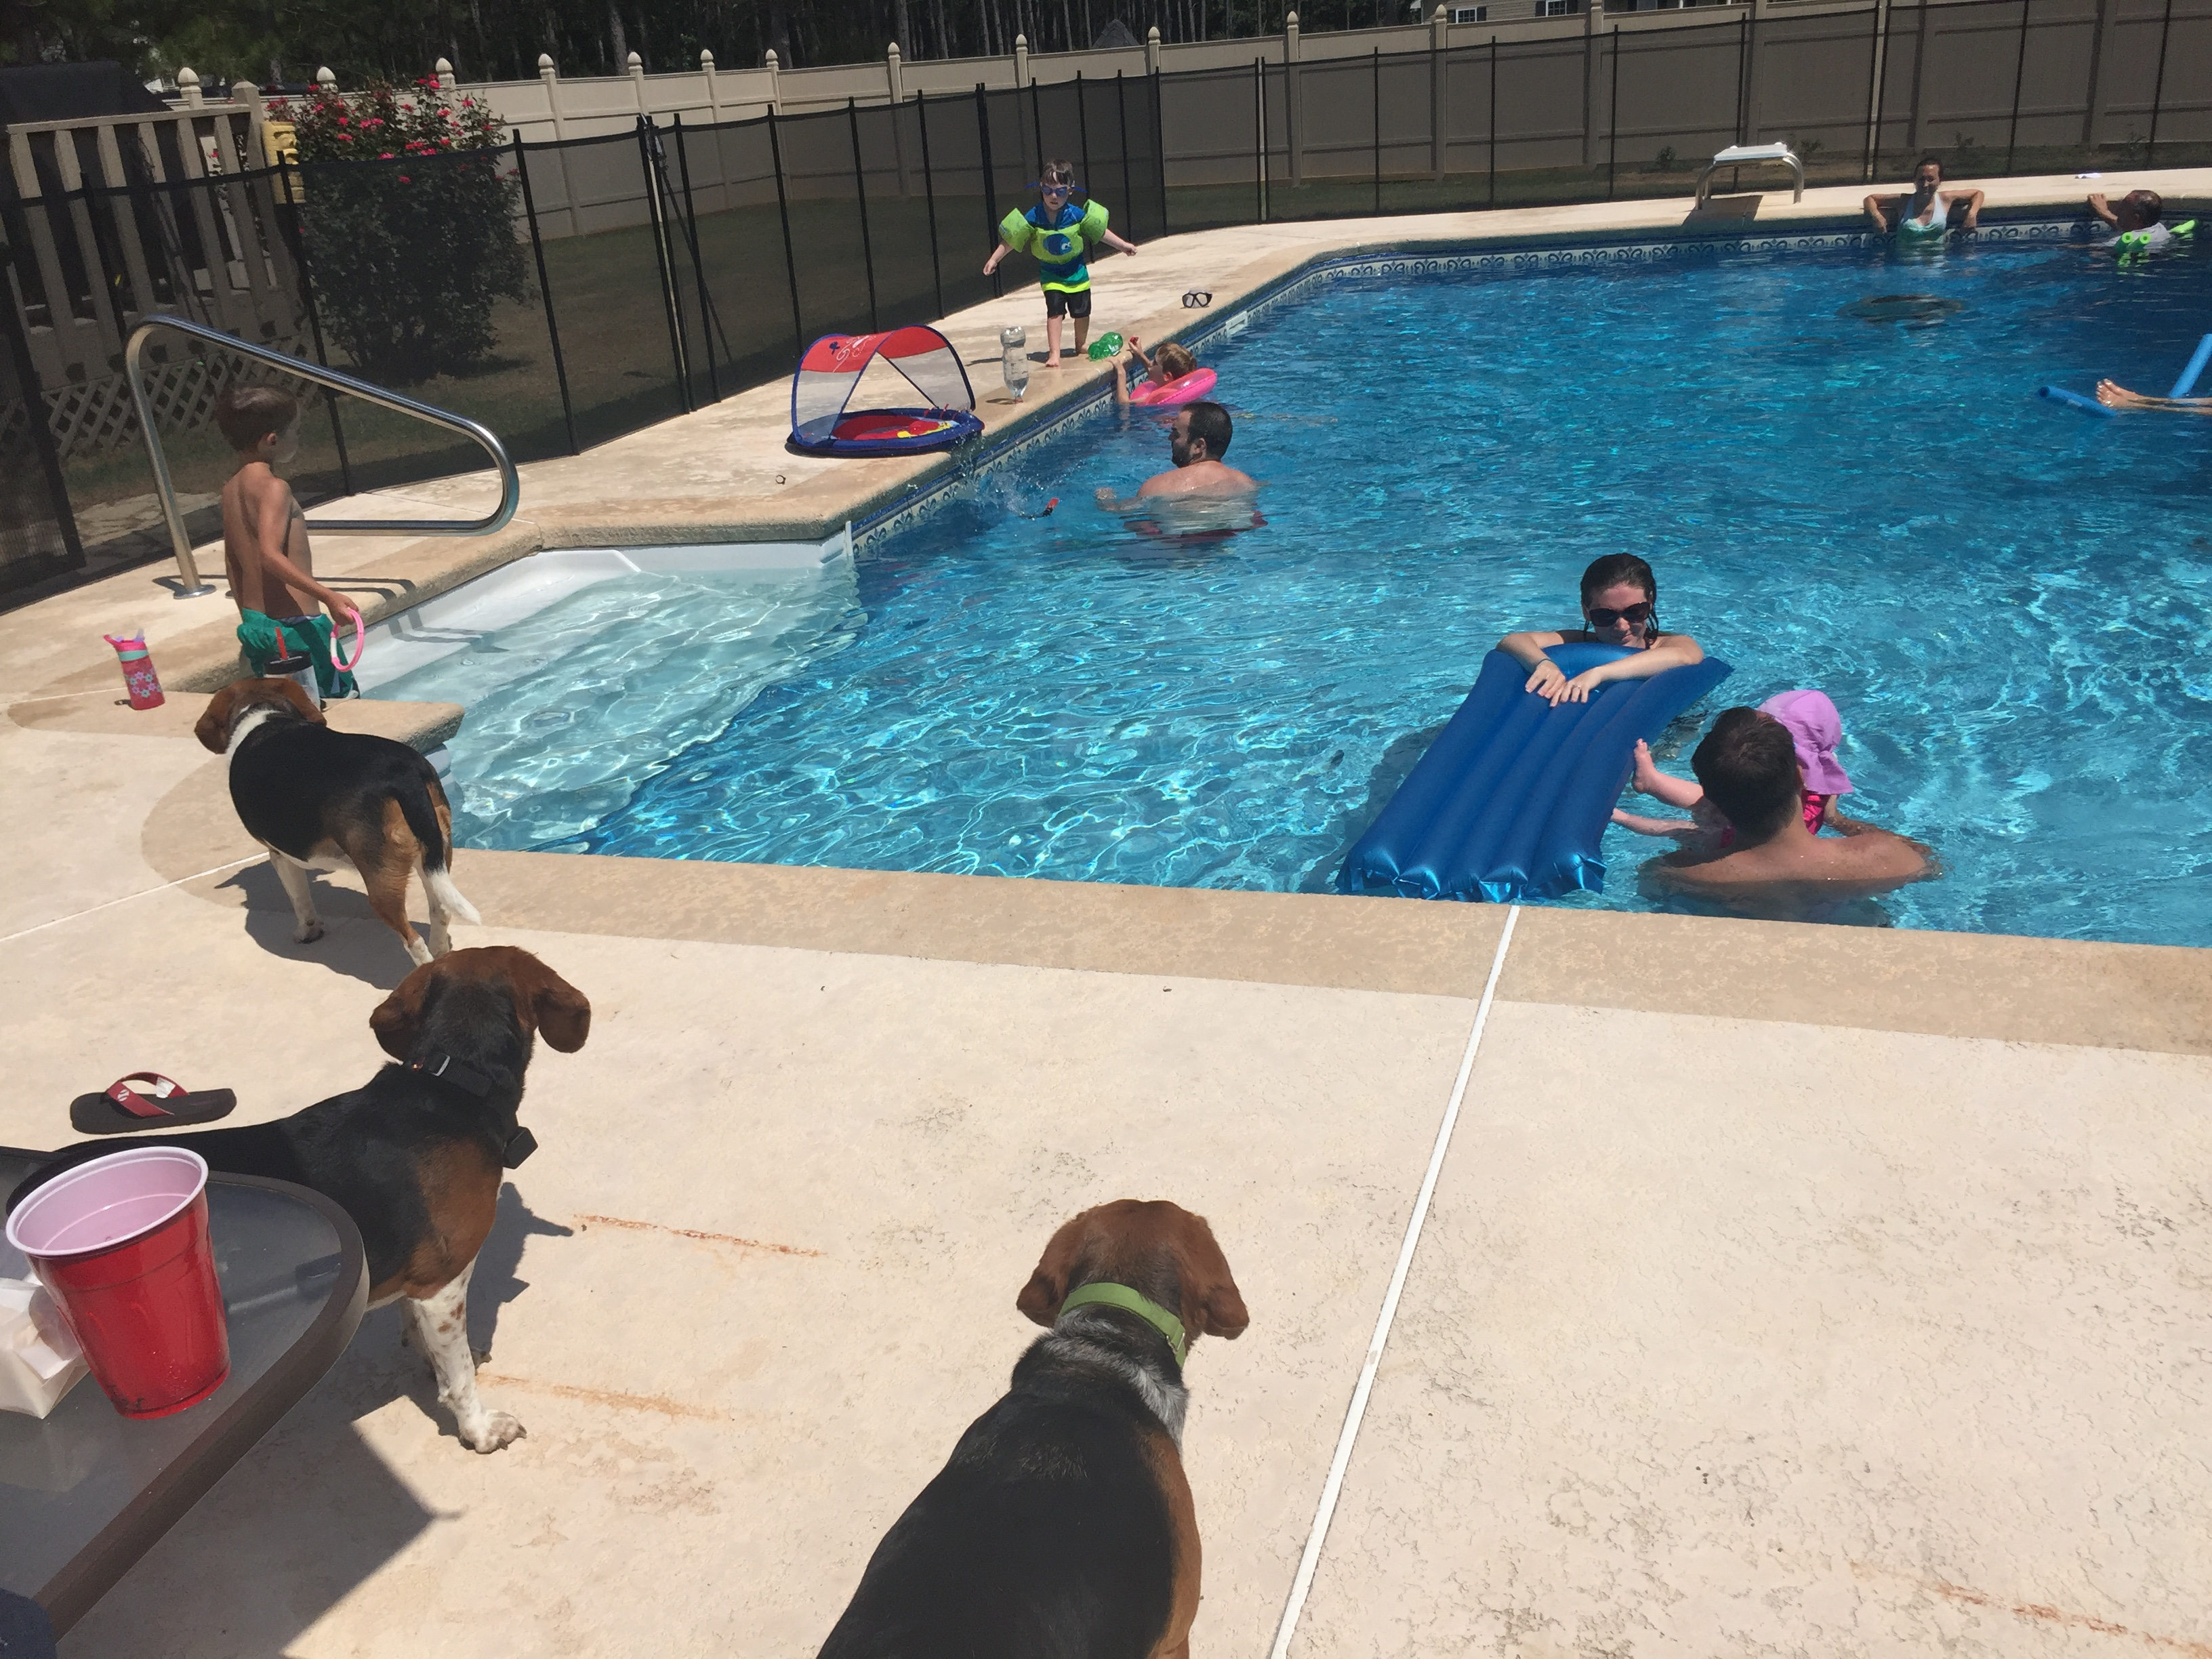 lots of pool time